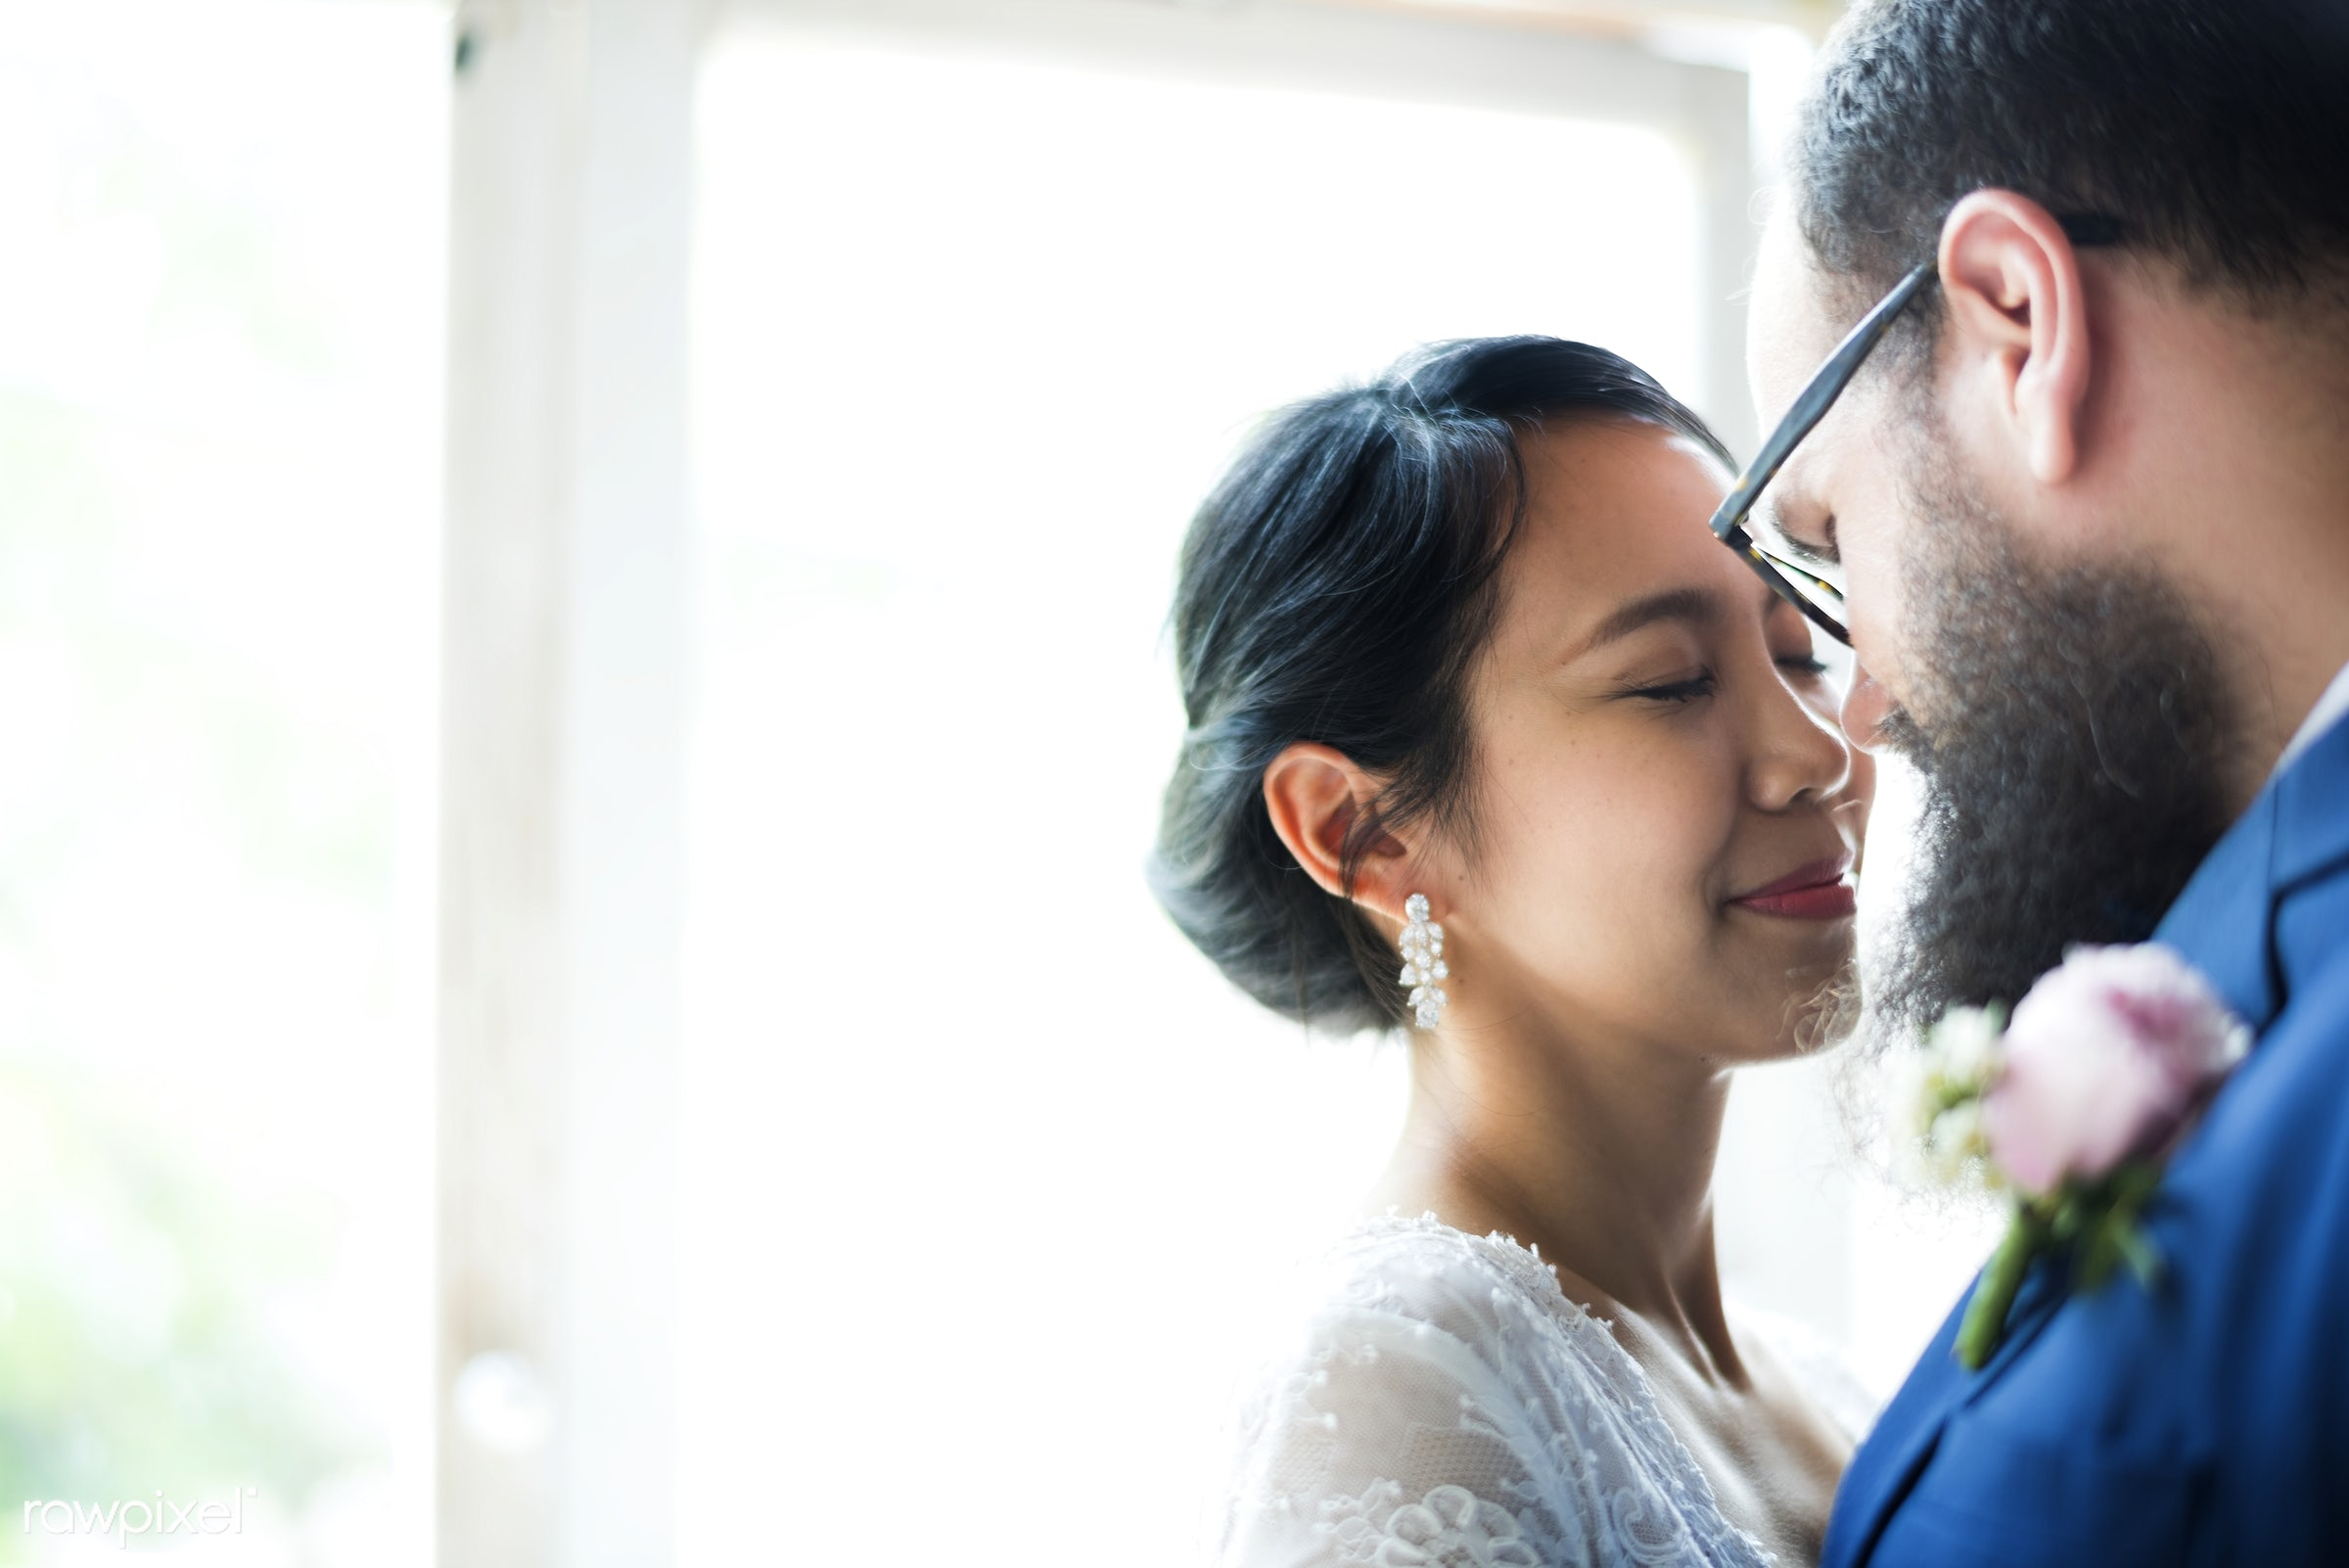 occasion, together, asian, caucasian, love, married, hands, couple, bride, cheerful, smiling, closeup, diversity, newlywed,...